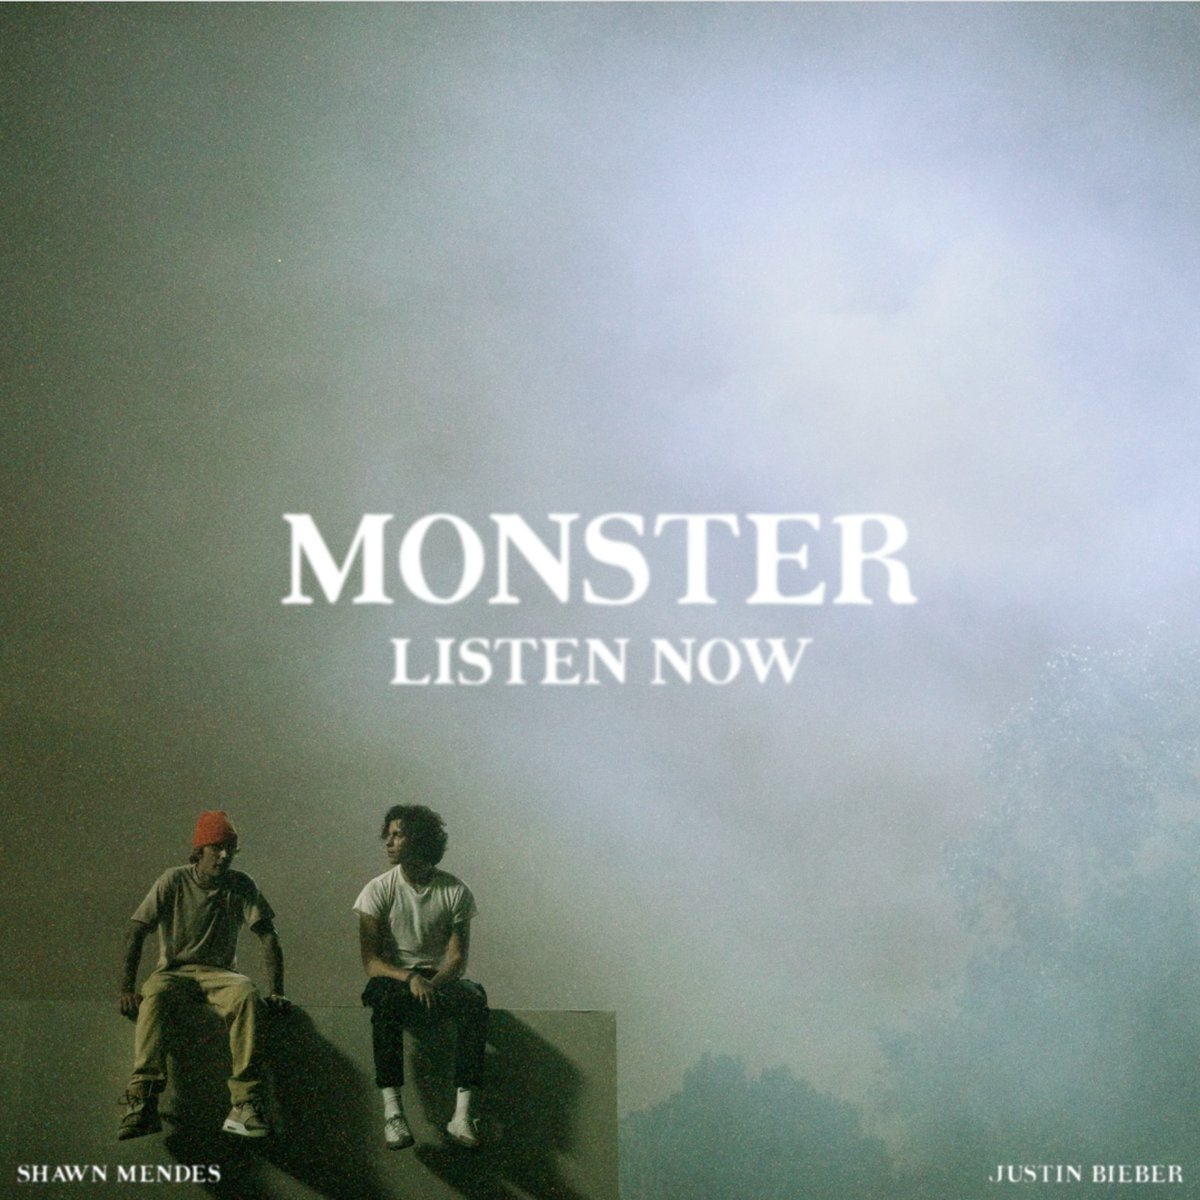 Replying to @ShawnMendes: #MONSTER out now @justinbieber